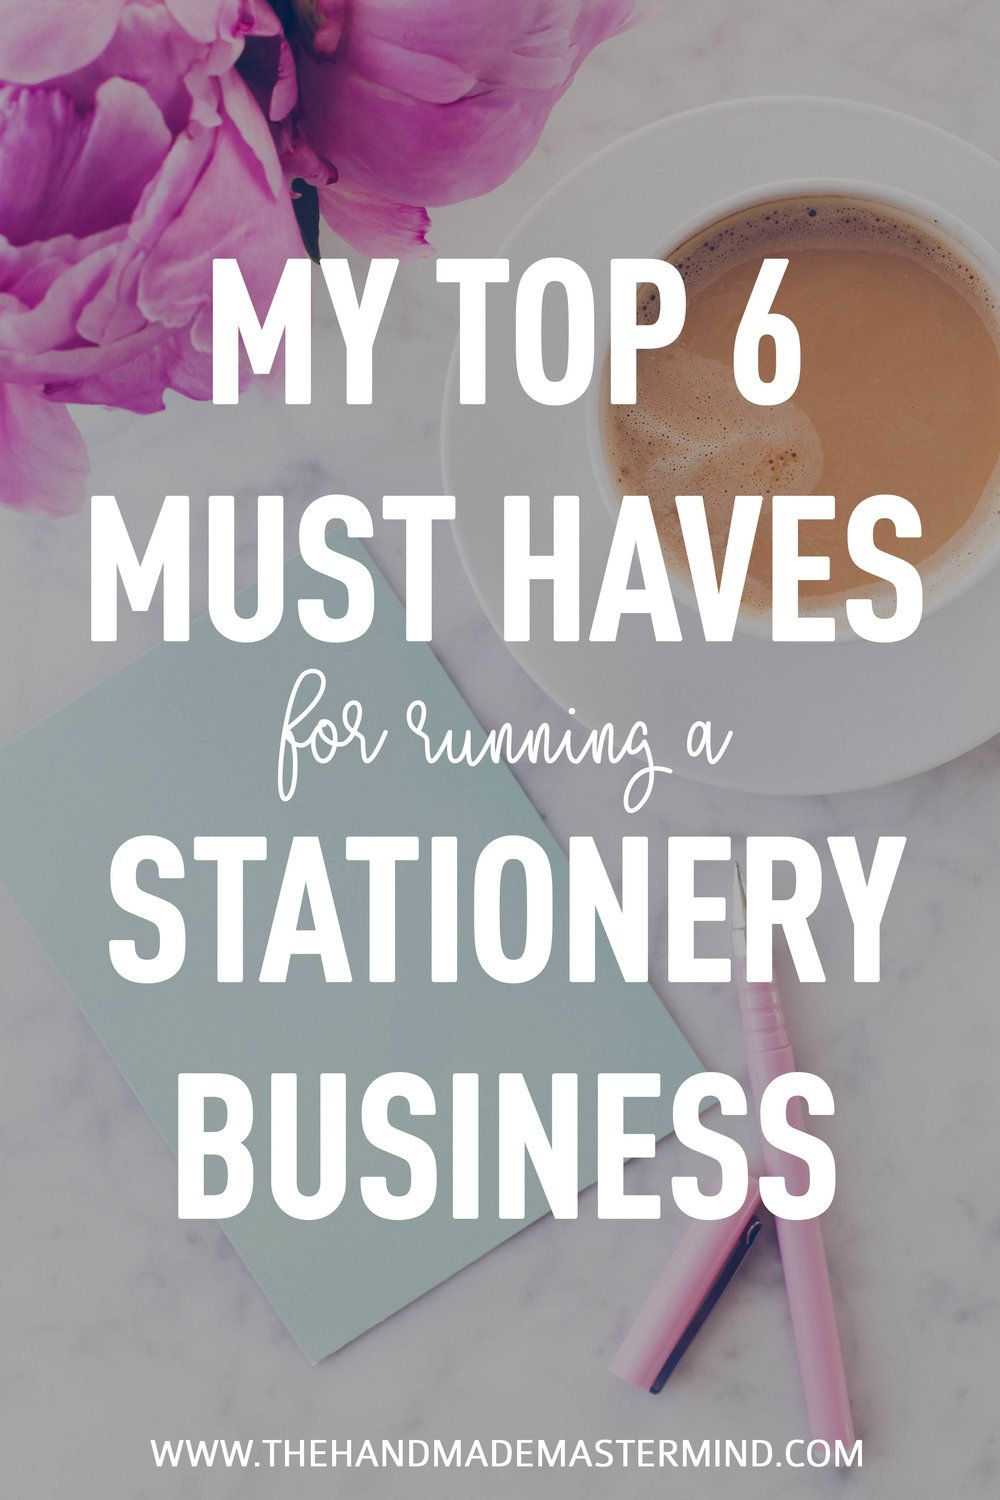 My top 6 MUST HAVES for running a stationery business